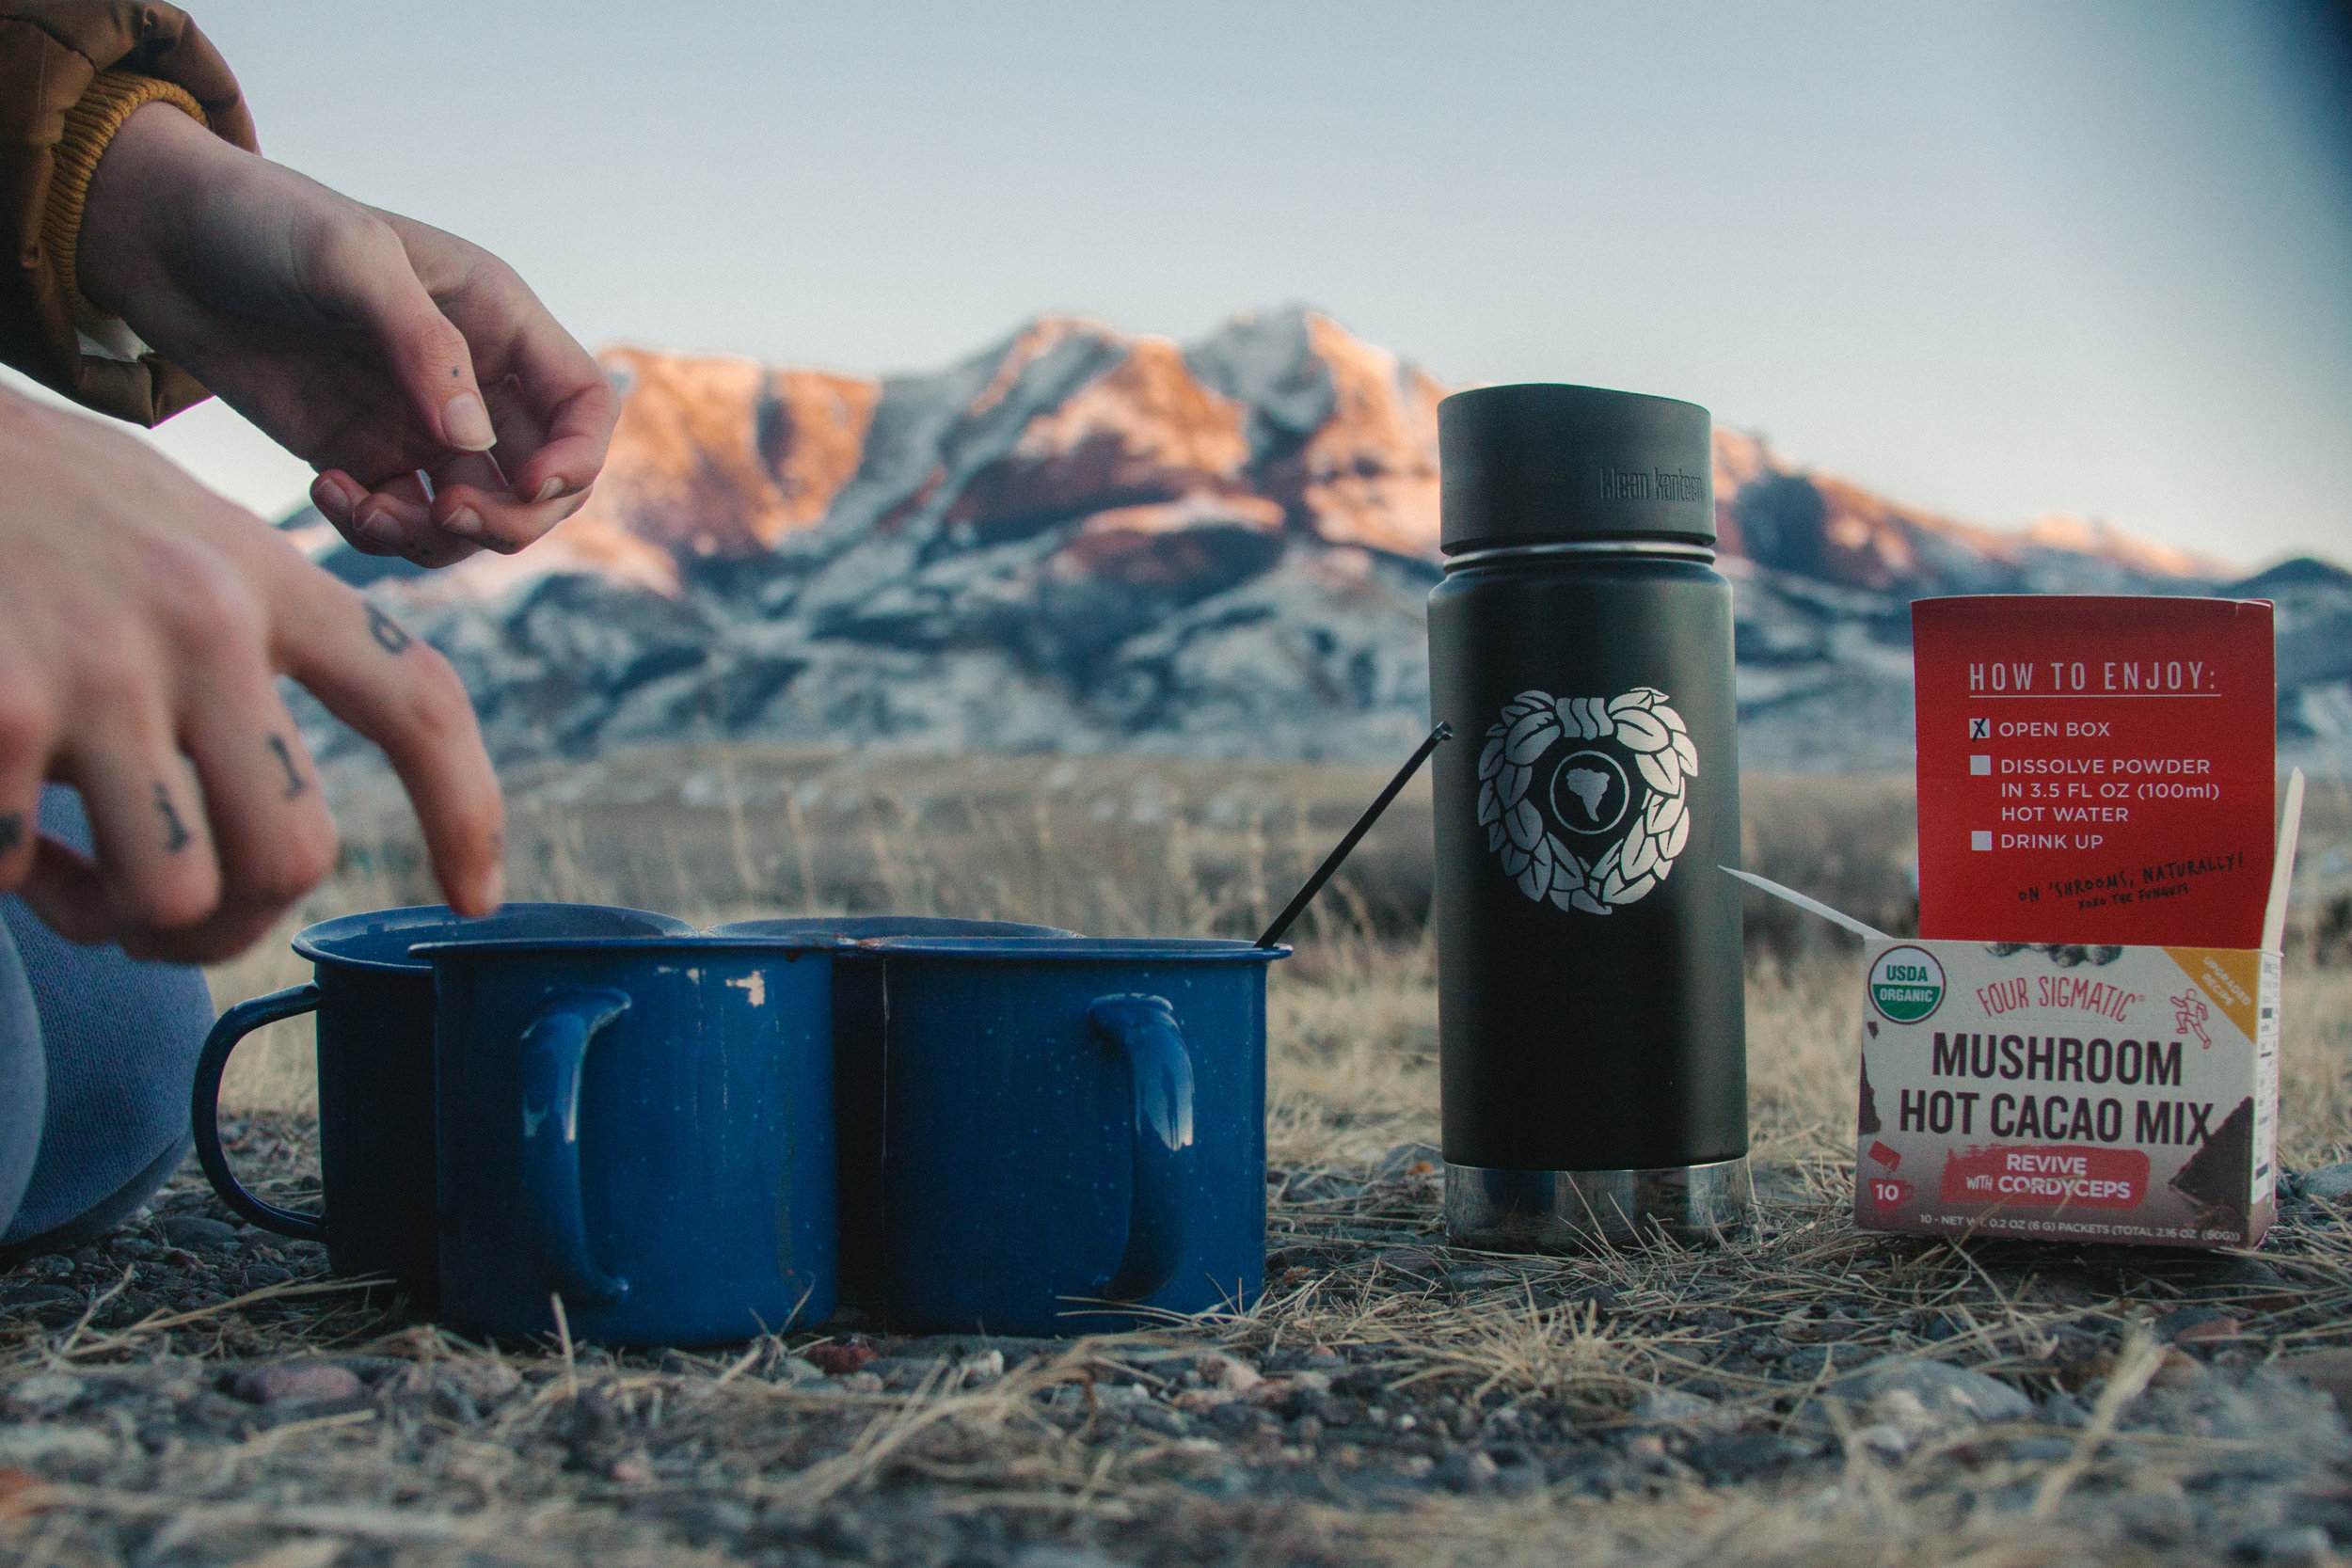 We pulled off in Paradise Valley outside of Yellowstone to whip up these tasty drinks + enjoy the sunset.